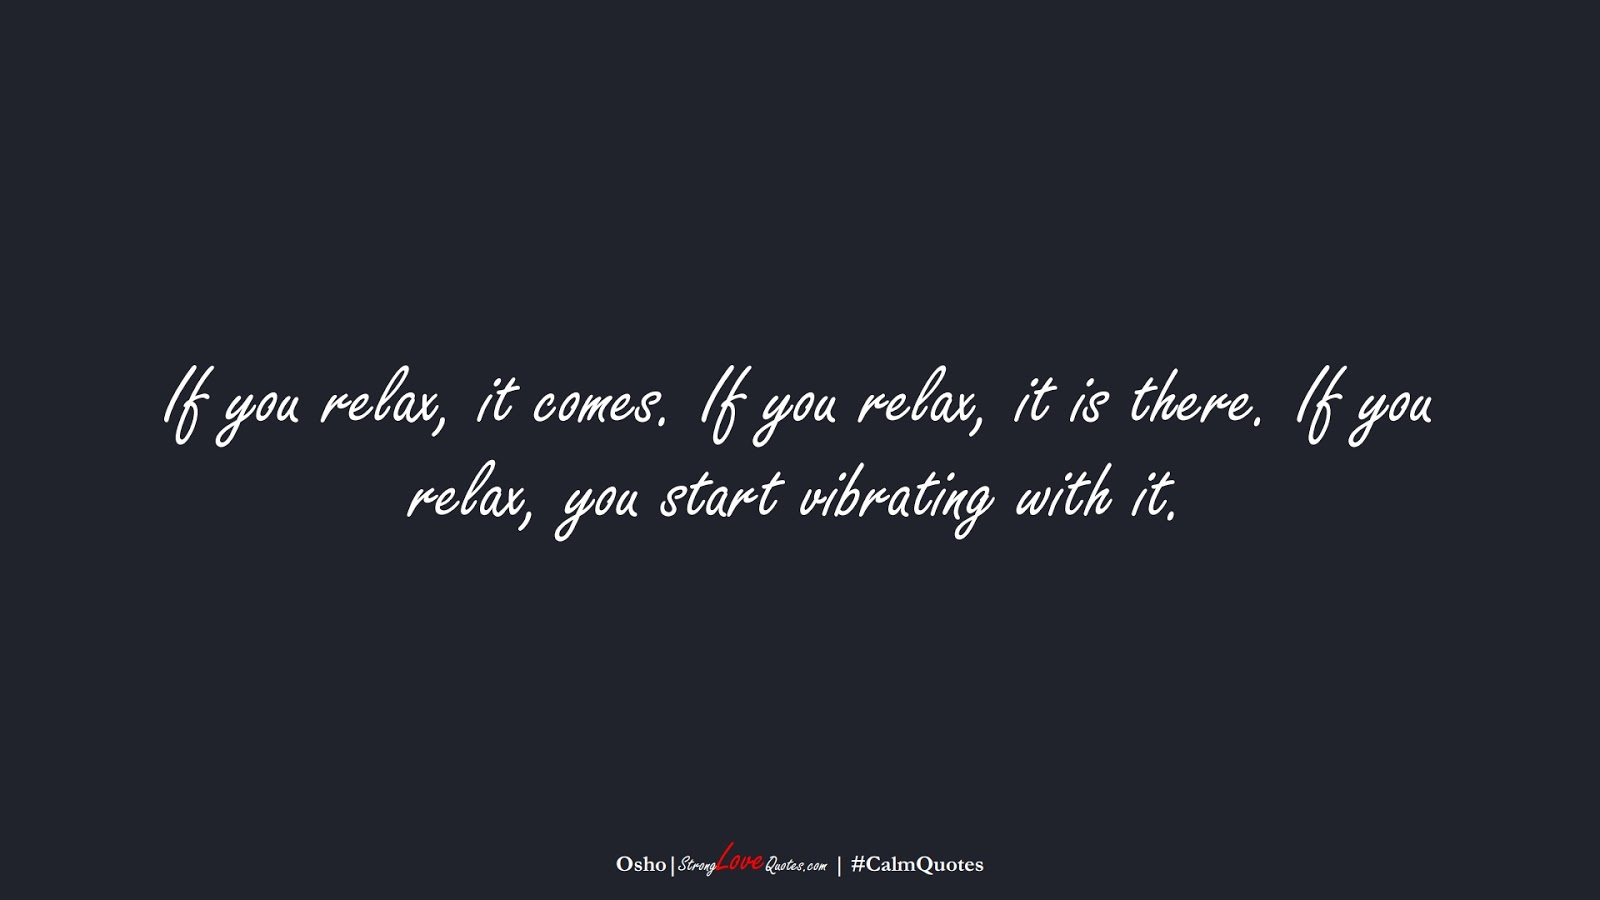 If you relax, it comes. If you relax, it is there. If you relax, you start vibrating with it. (Osho);  #CalmQuotes